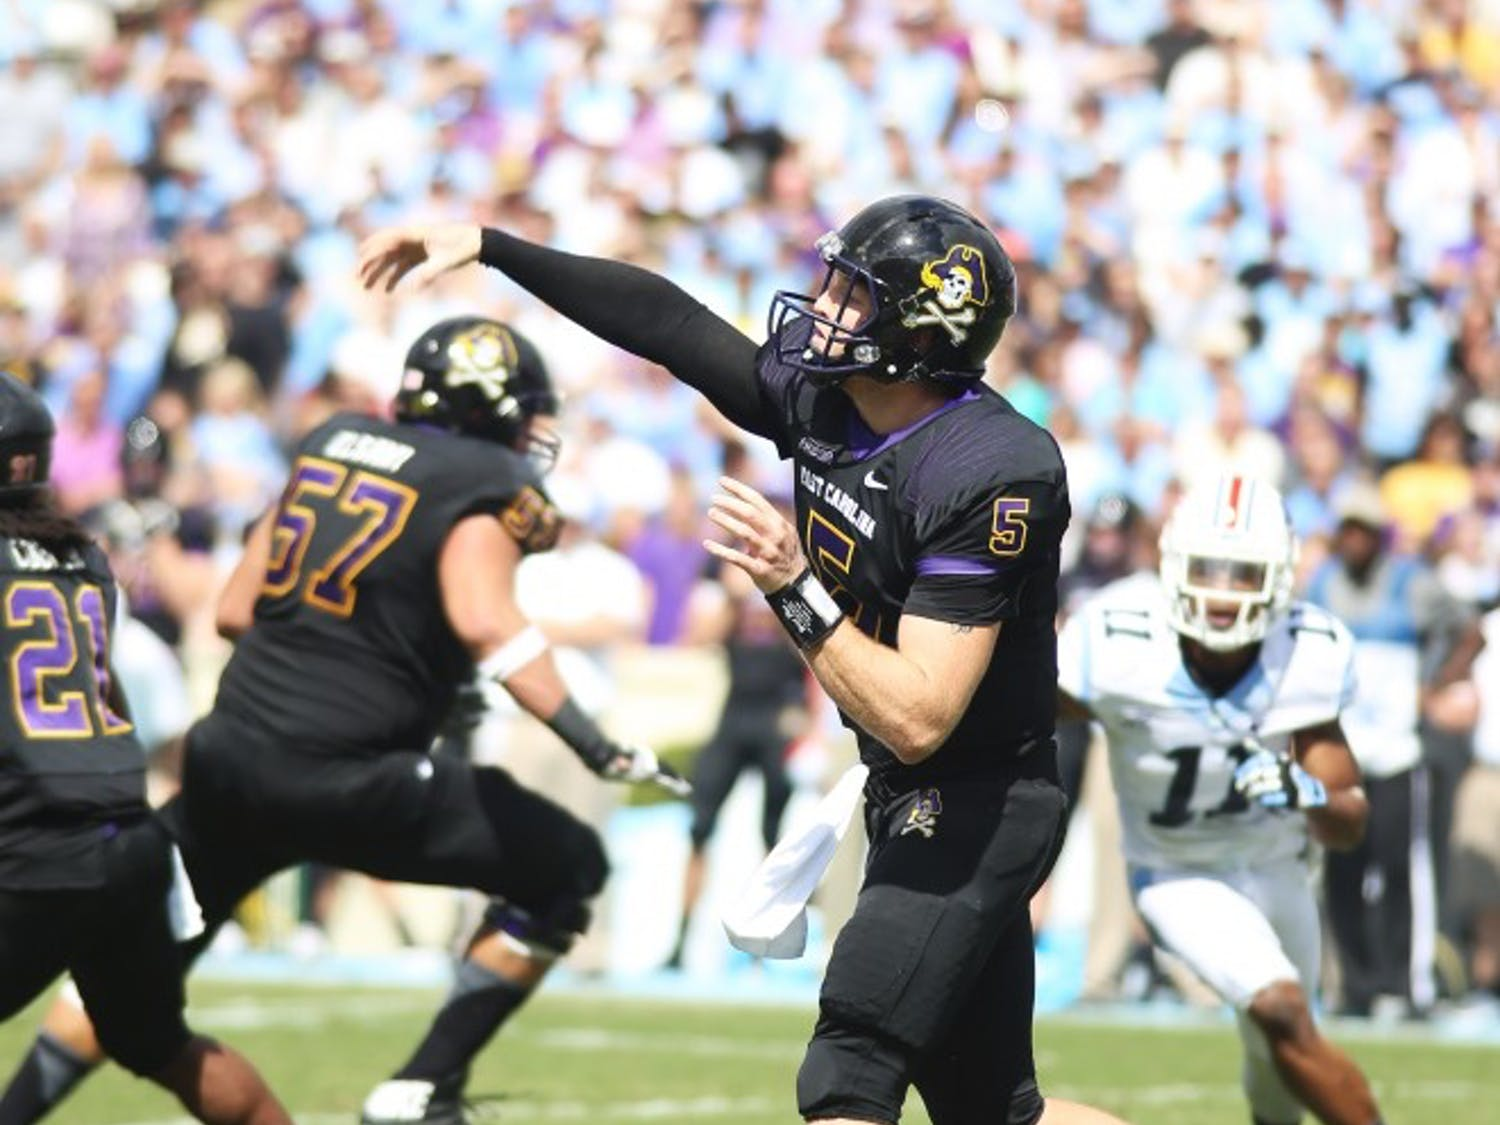 ECU quarterback Shane Carden (5) throws a pass. He completed 32 out of 47 attempts with 1 interception.